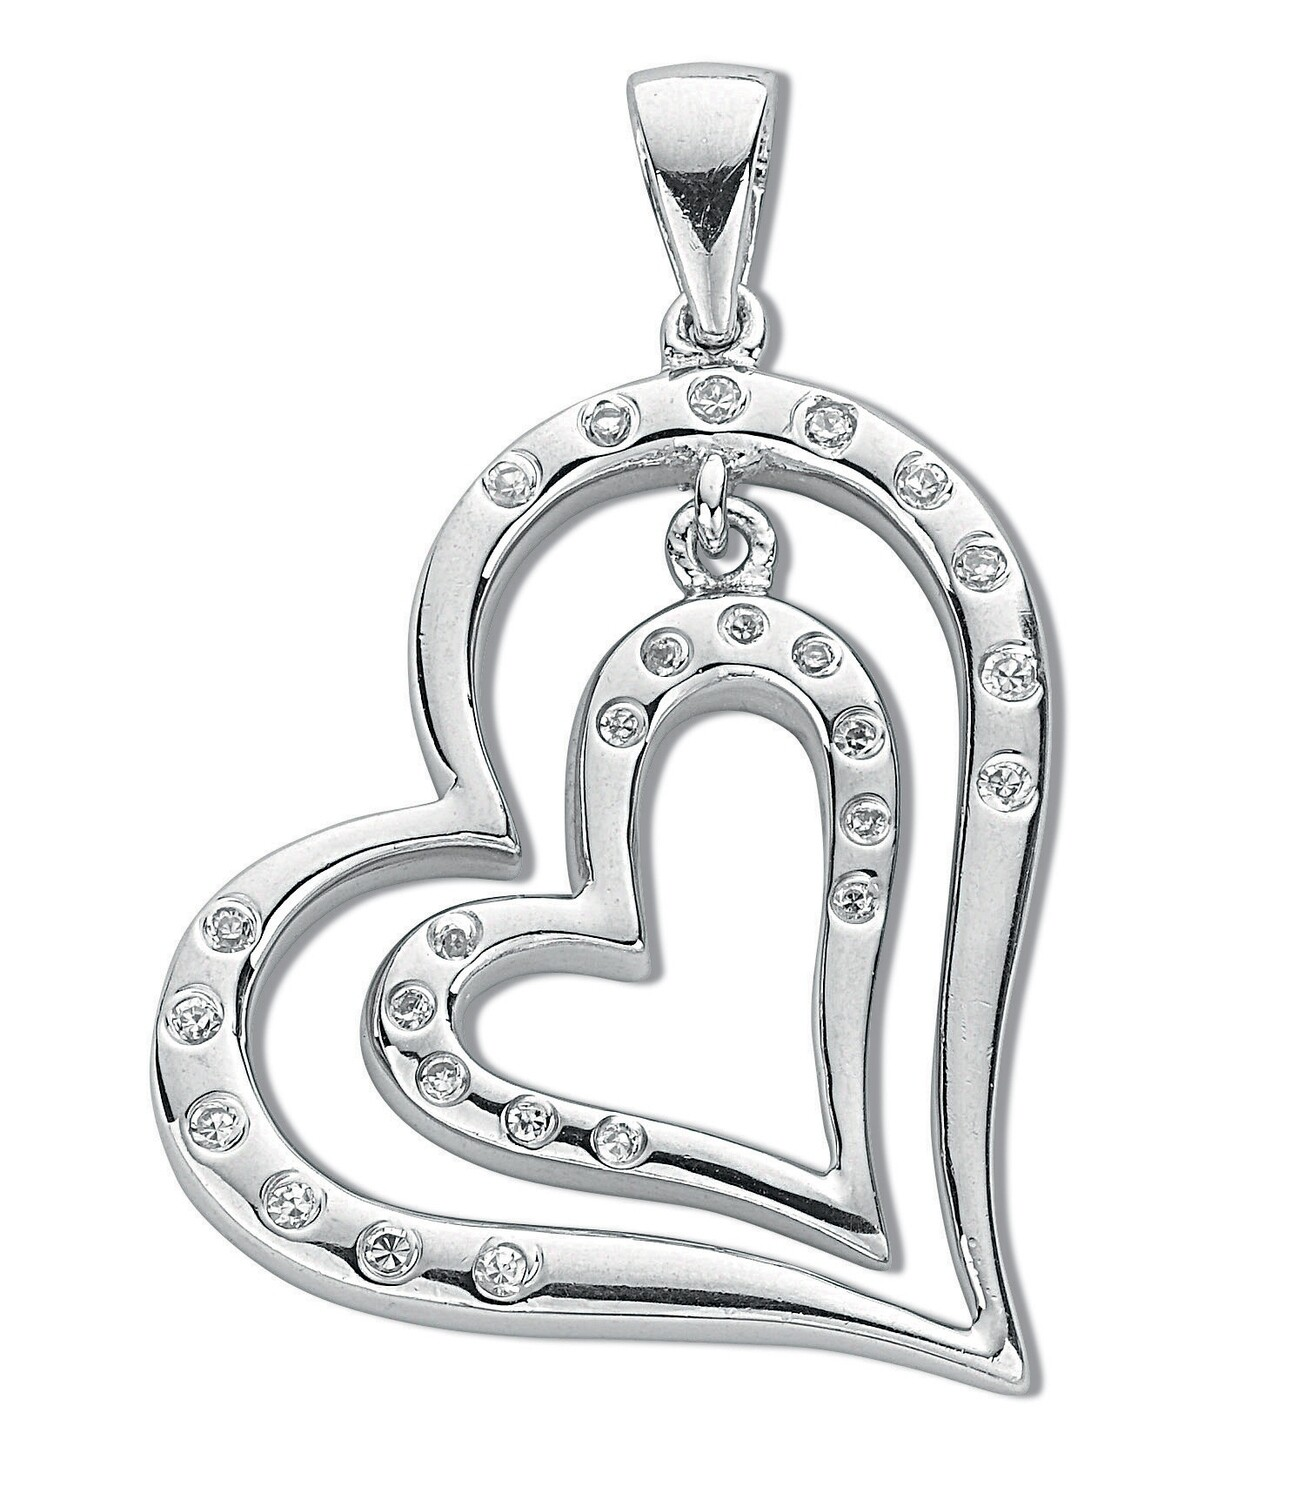 Heart shape pendants, the most popular Valentin's day gift